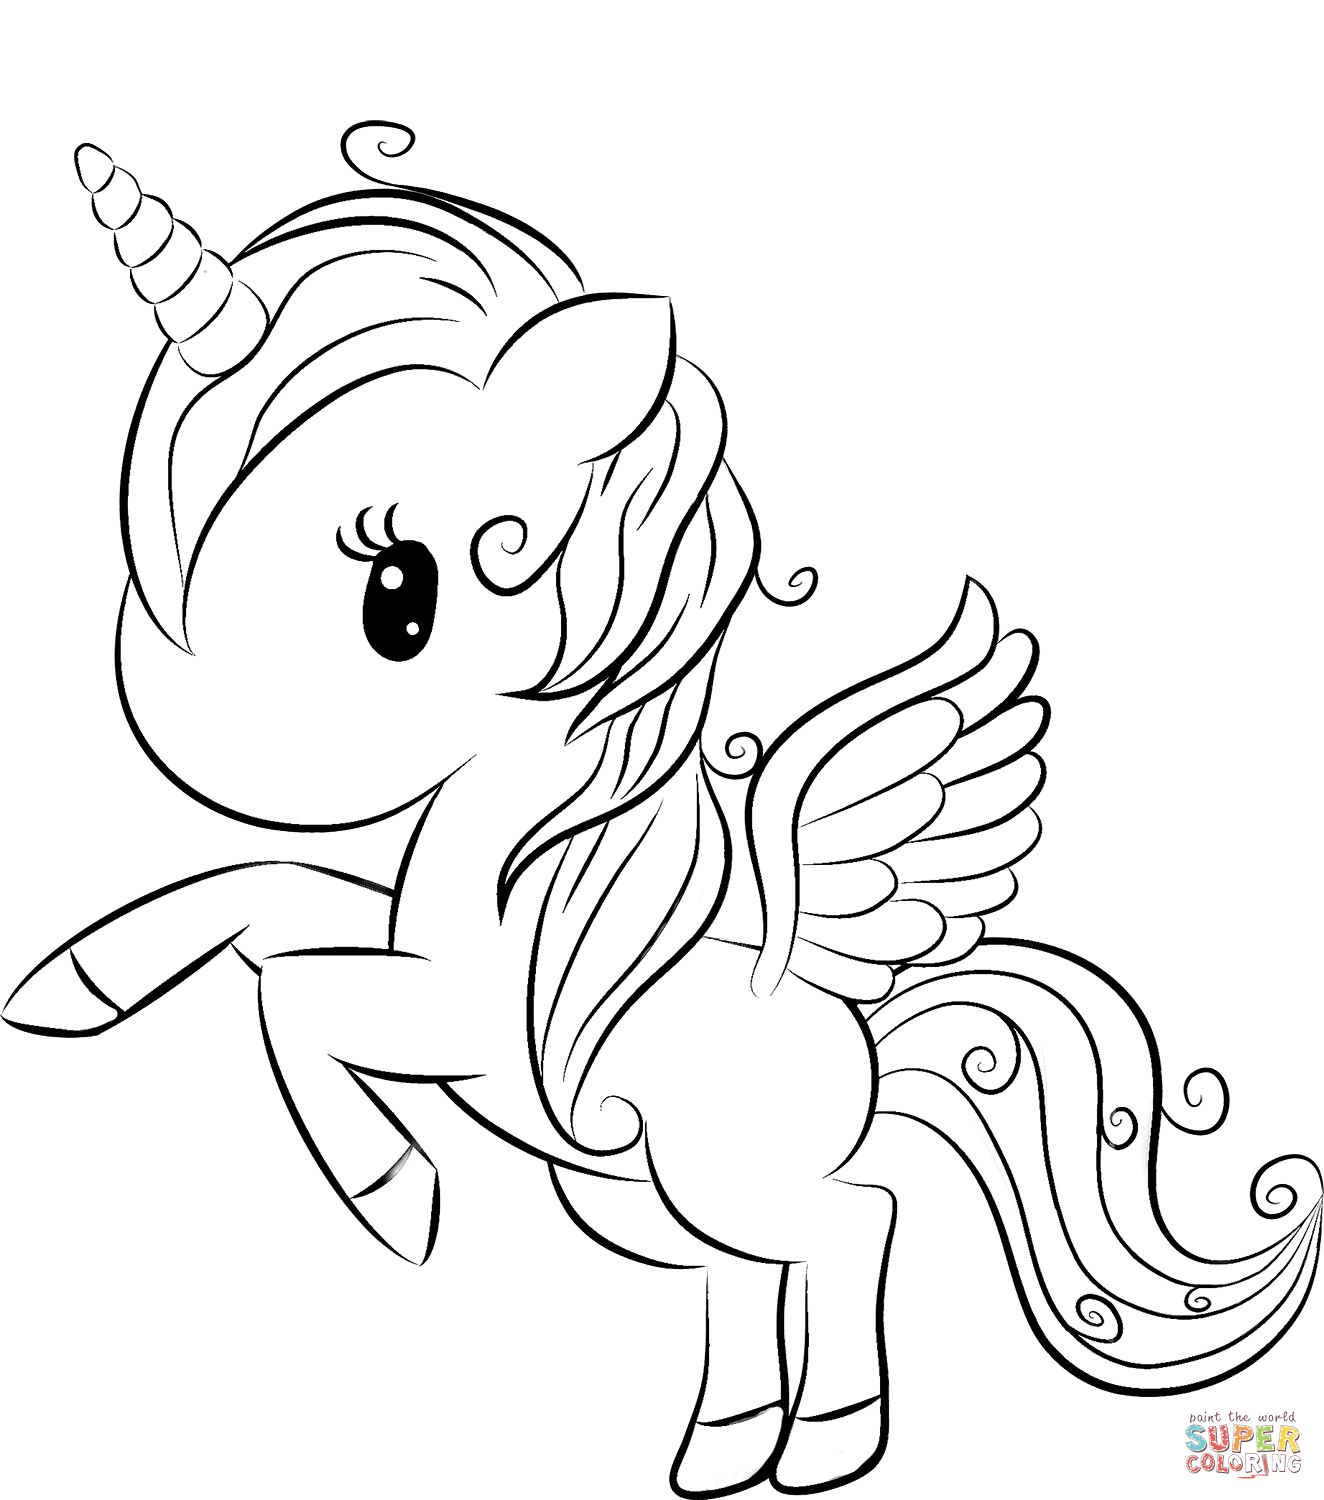 Unicorn Coloring Pages For Kids  Cute Unicorn coloring page